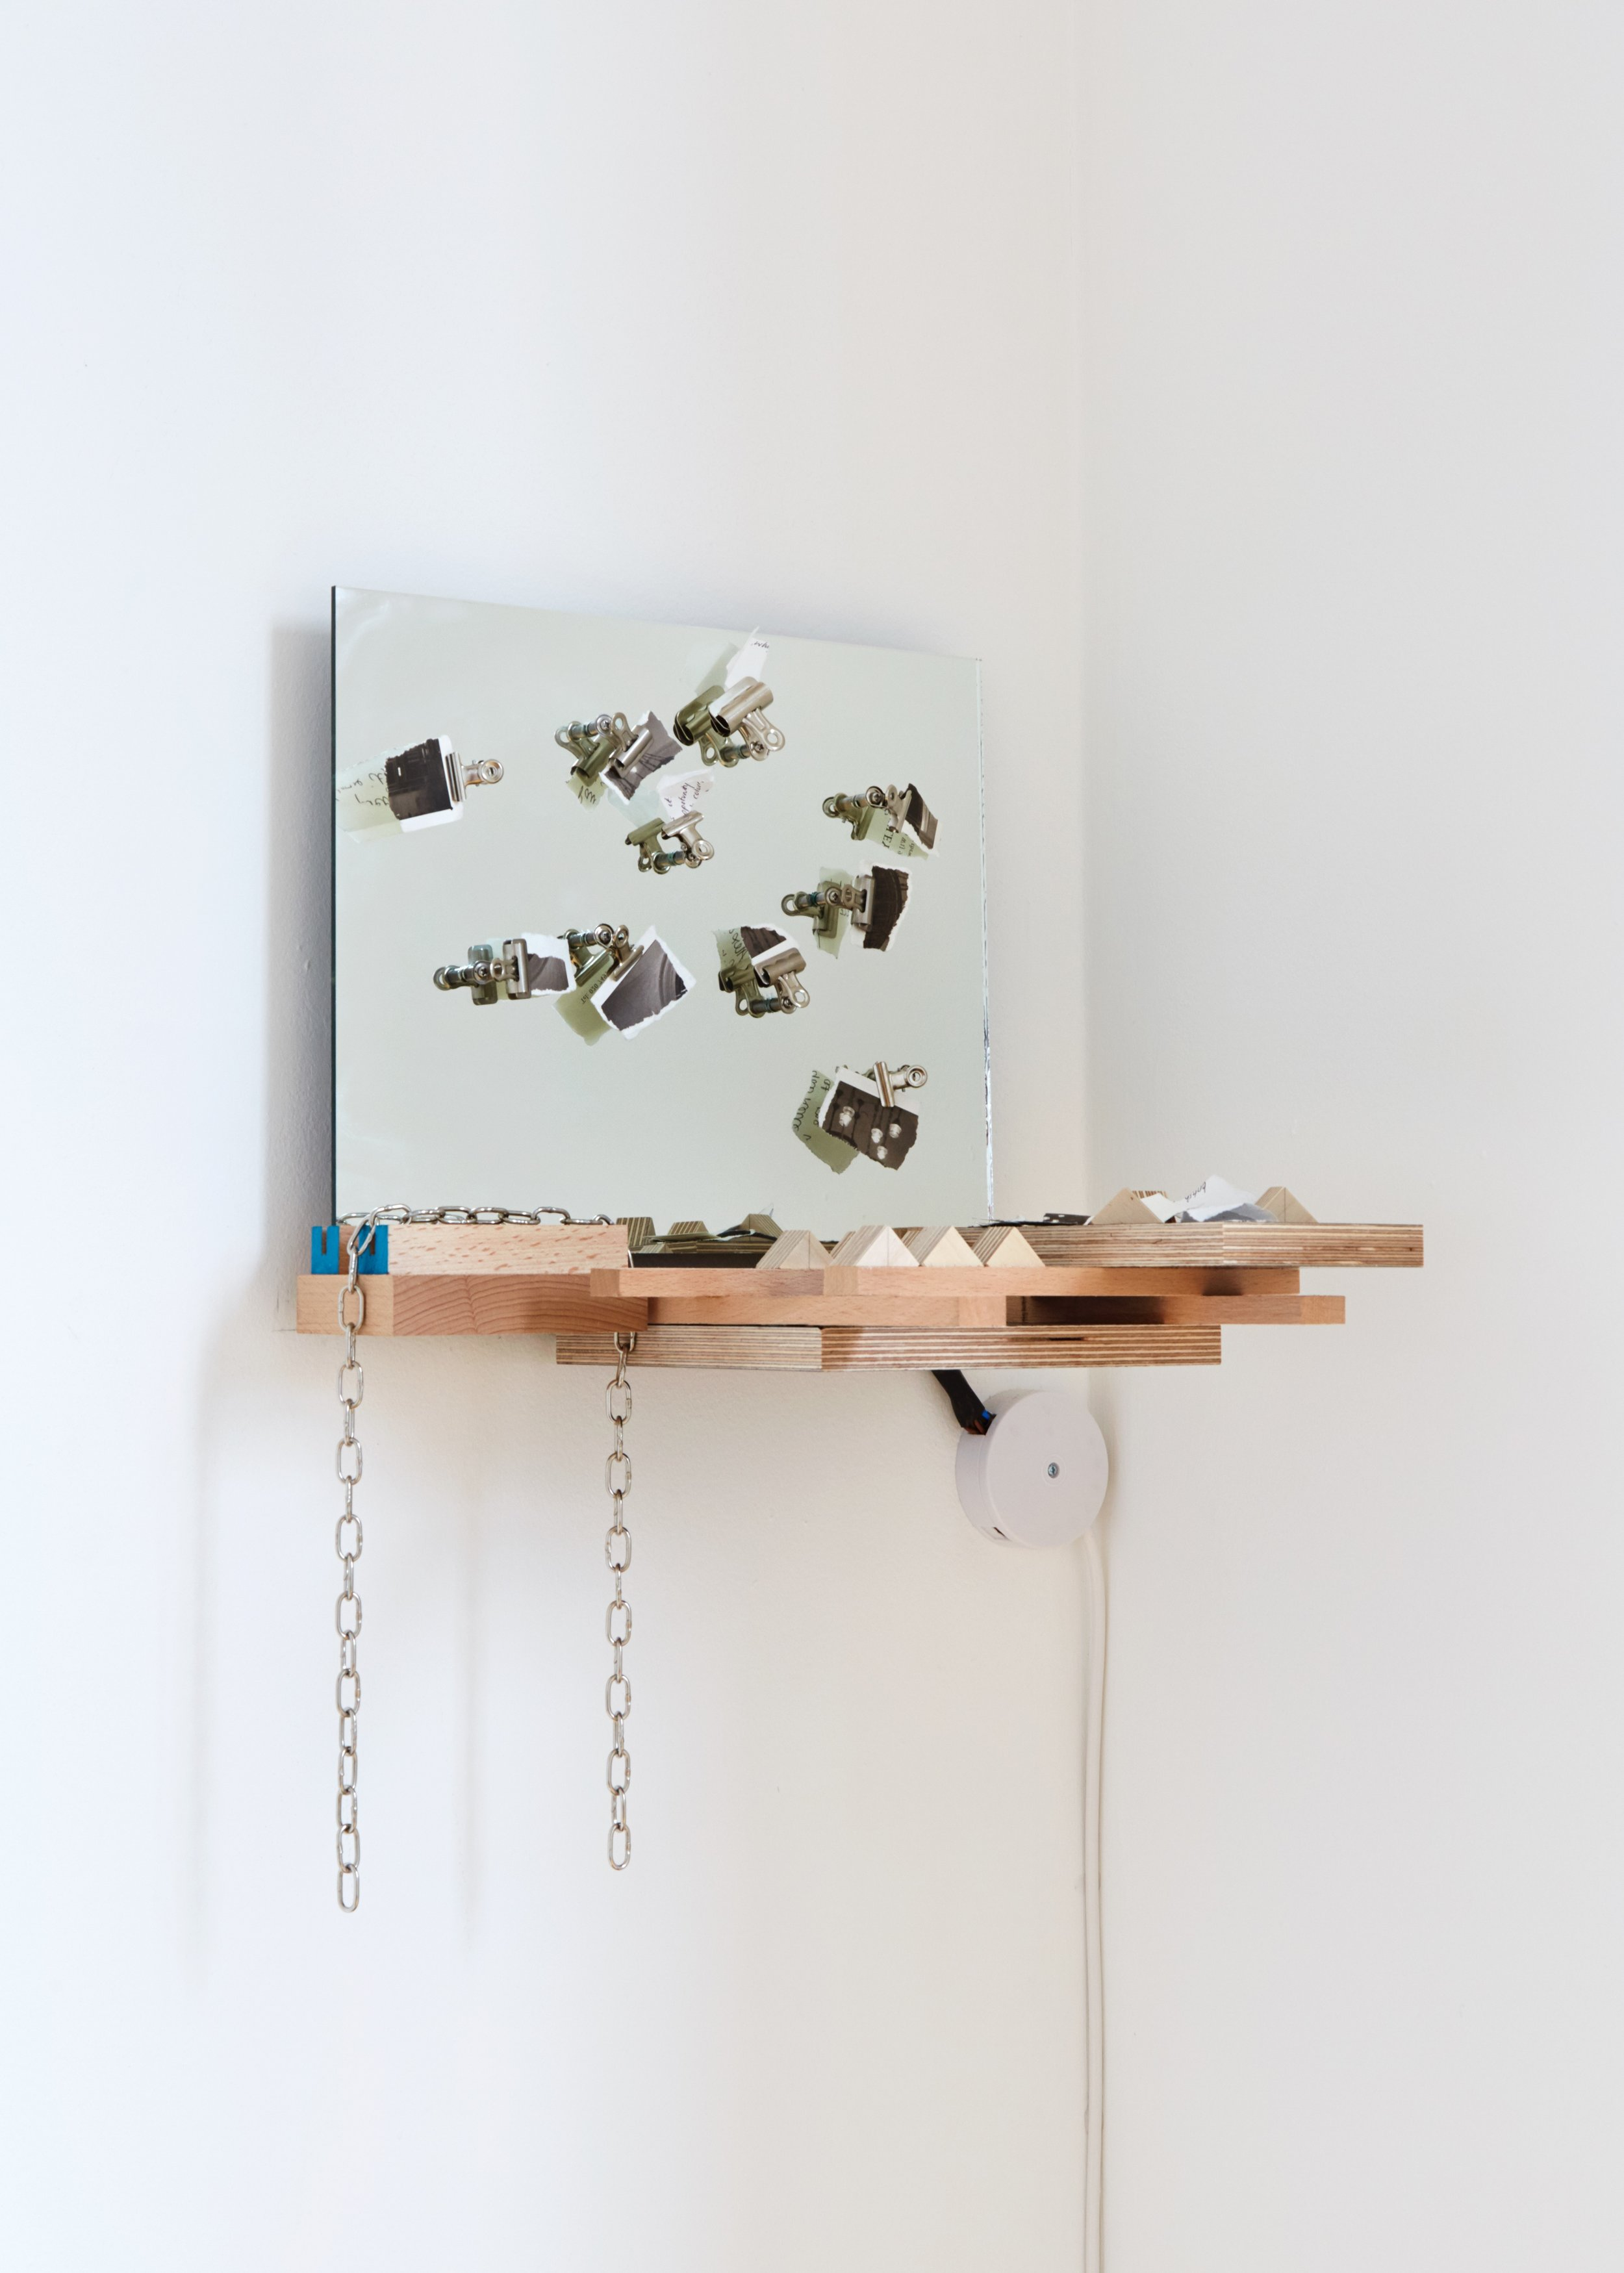 Trivial Matter  濕濕碎 ,  2019 Ash, Beach, Melamine Plywood, and Pencil on Plywood with Bath plug Chain, Torn Postcard and Written Notes, Assorted Bulldog Clips, Arduino and Electronics 55 x 38 x 32 cm